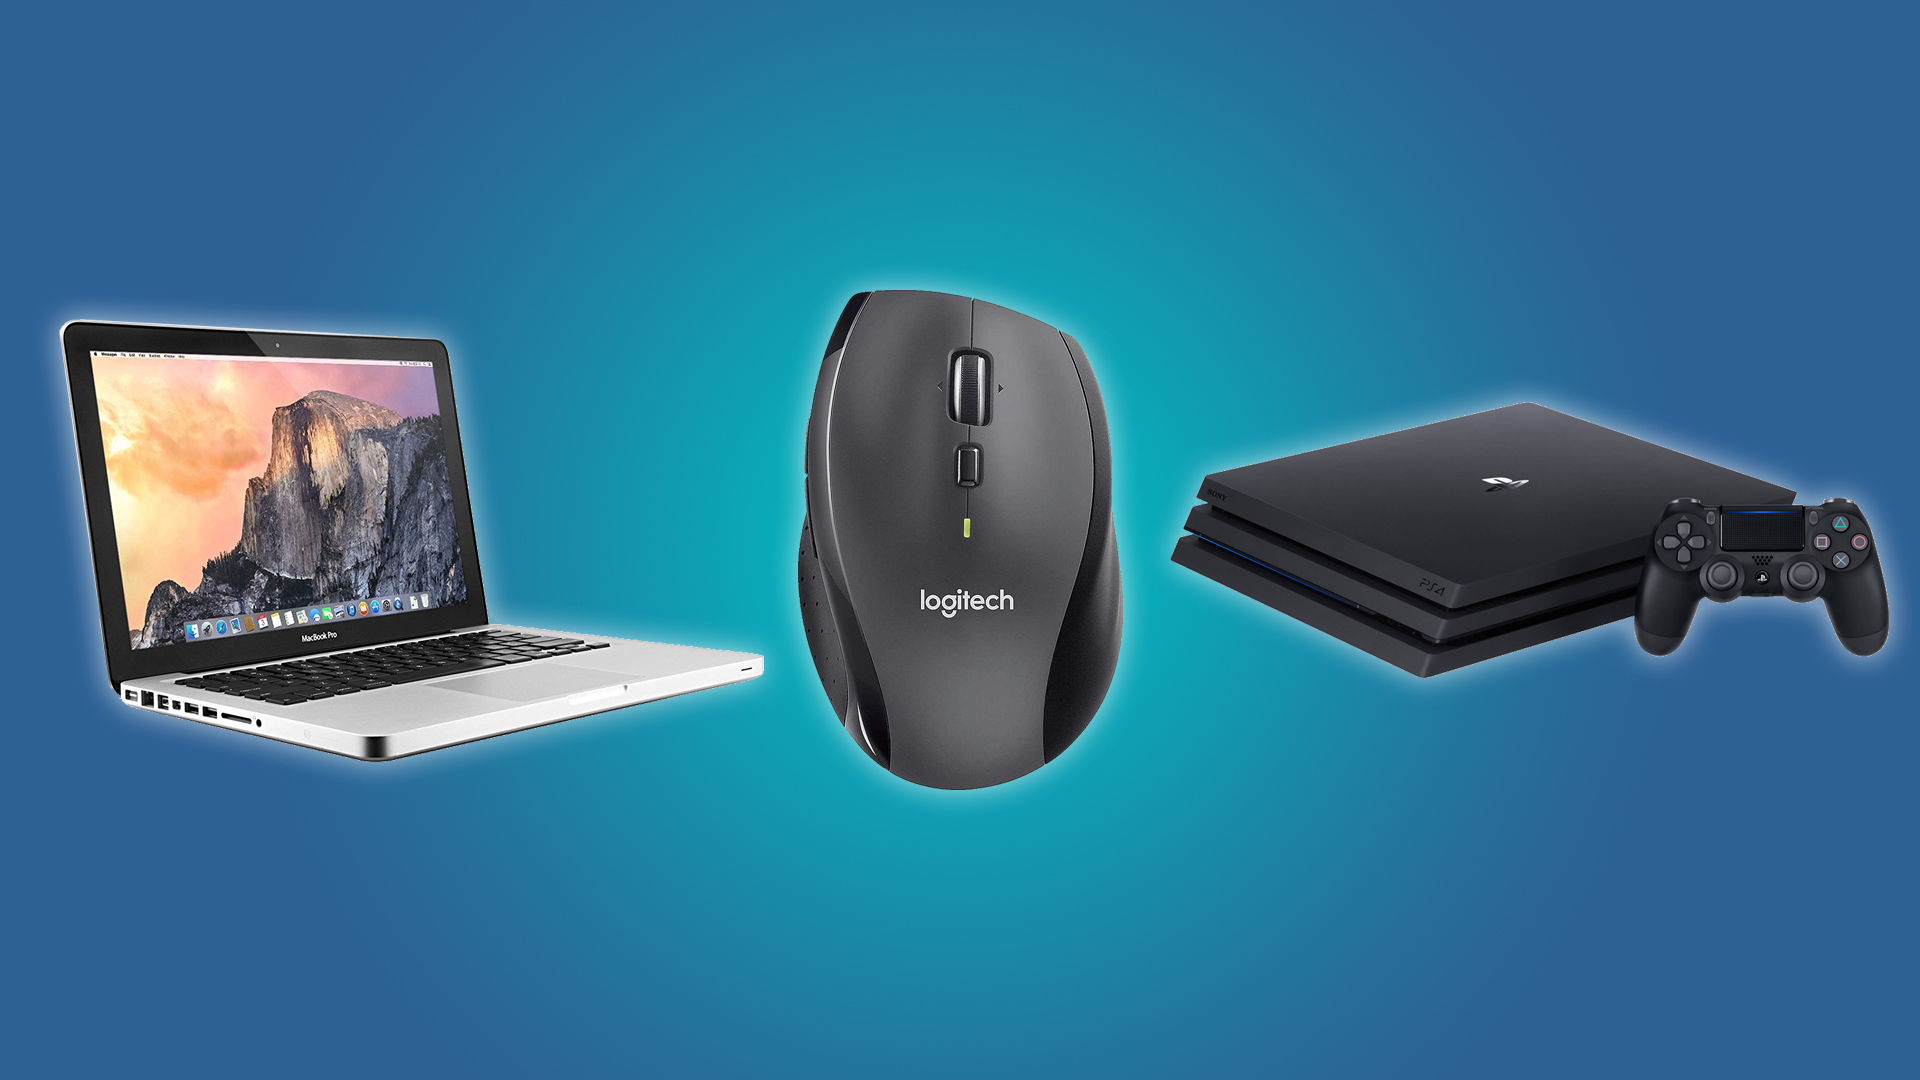 The MacBook Pro, the Logitech Marathon Mouse, and the PlayStation 4